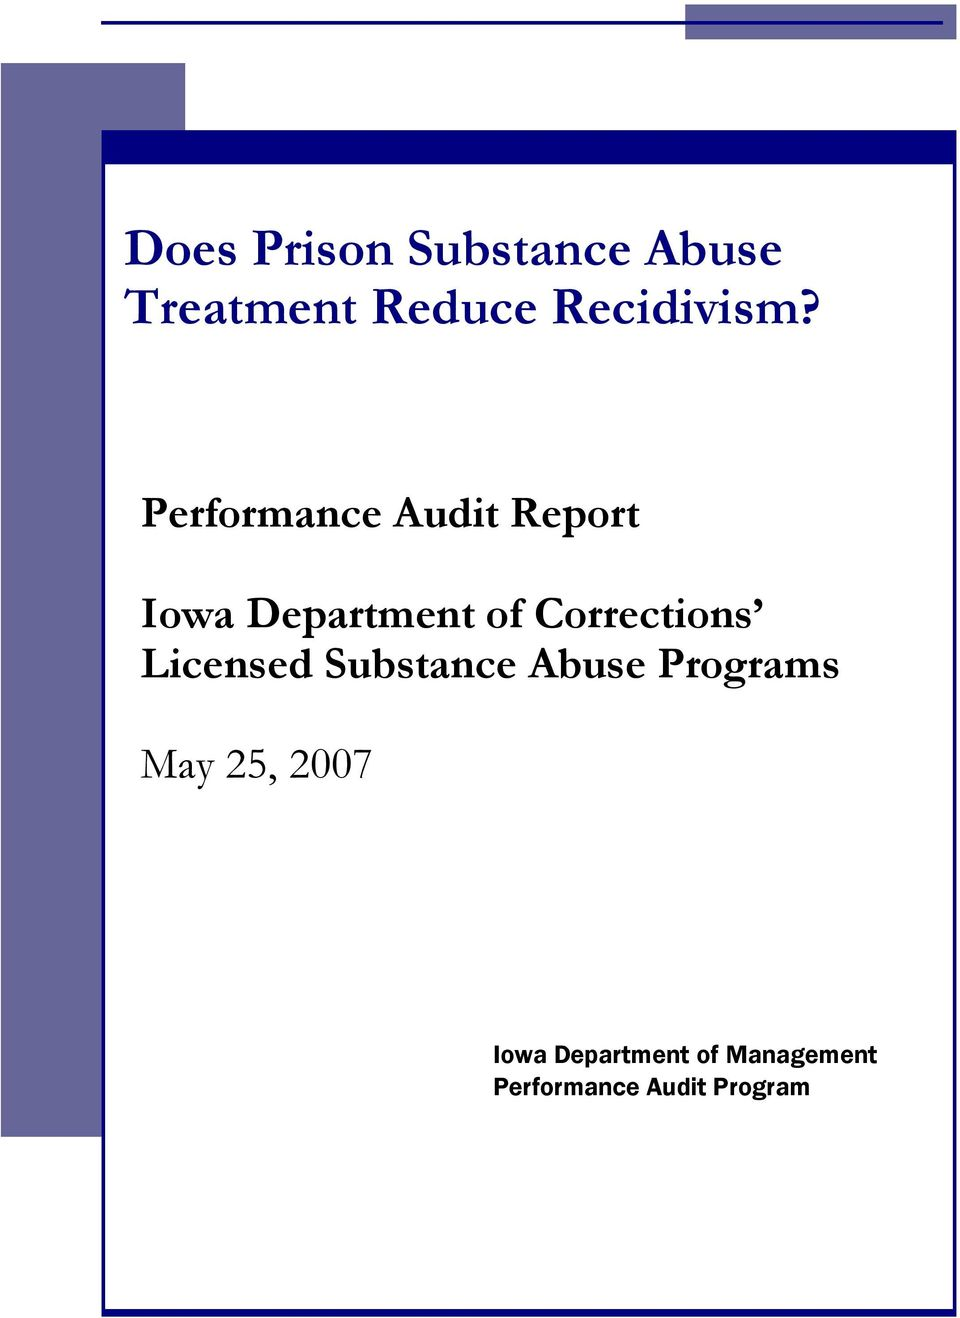 Performance Audit Report Iowa Department of